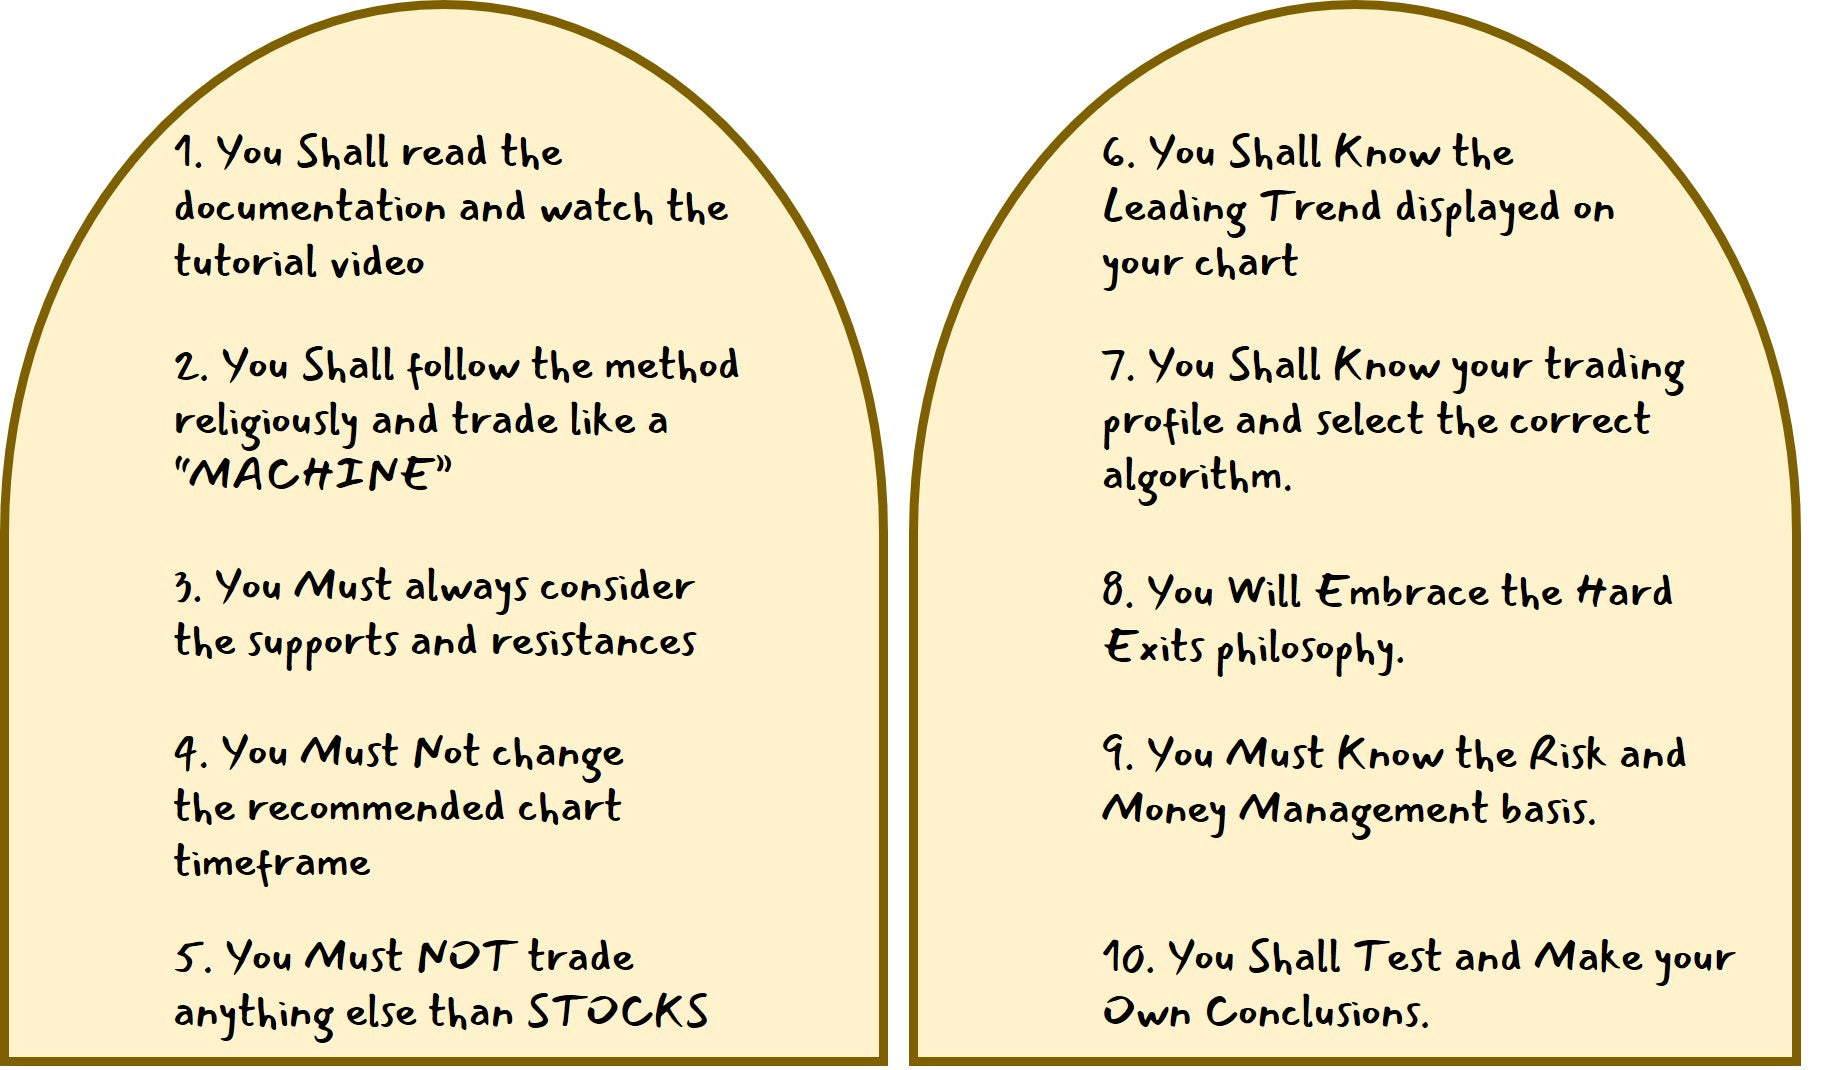 BEST 10 commandments stocks trading